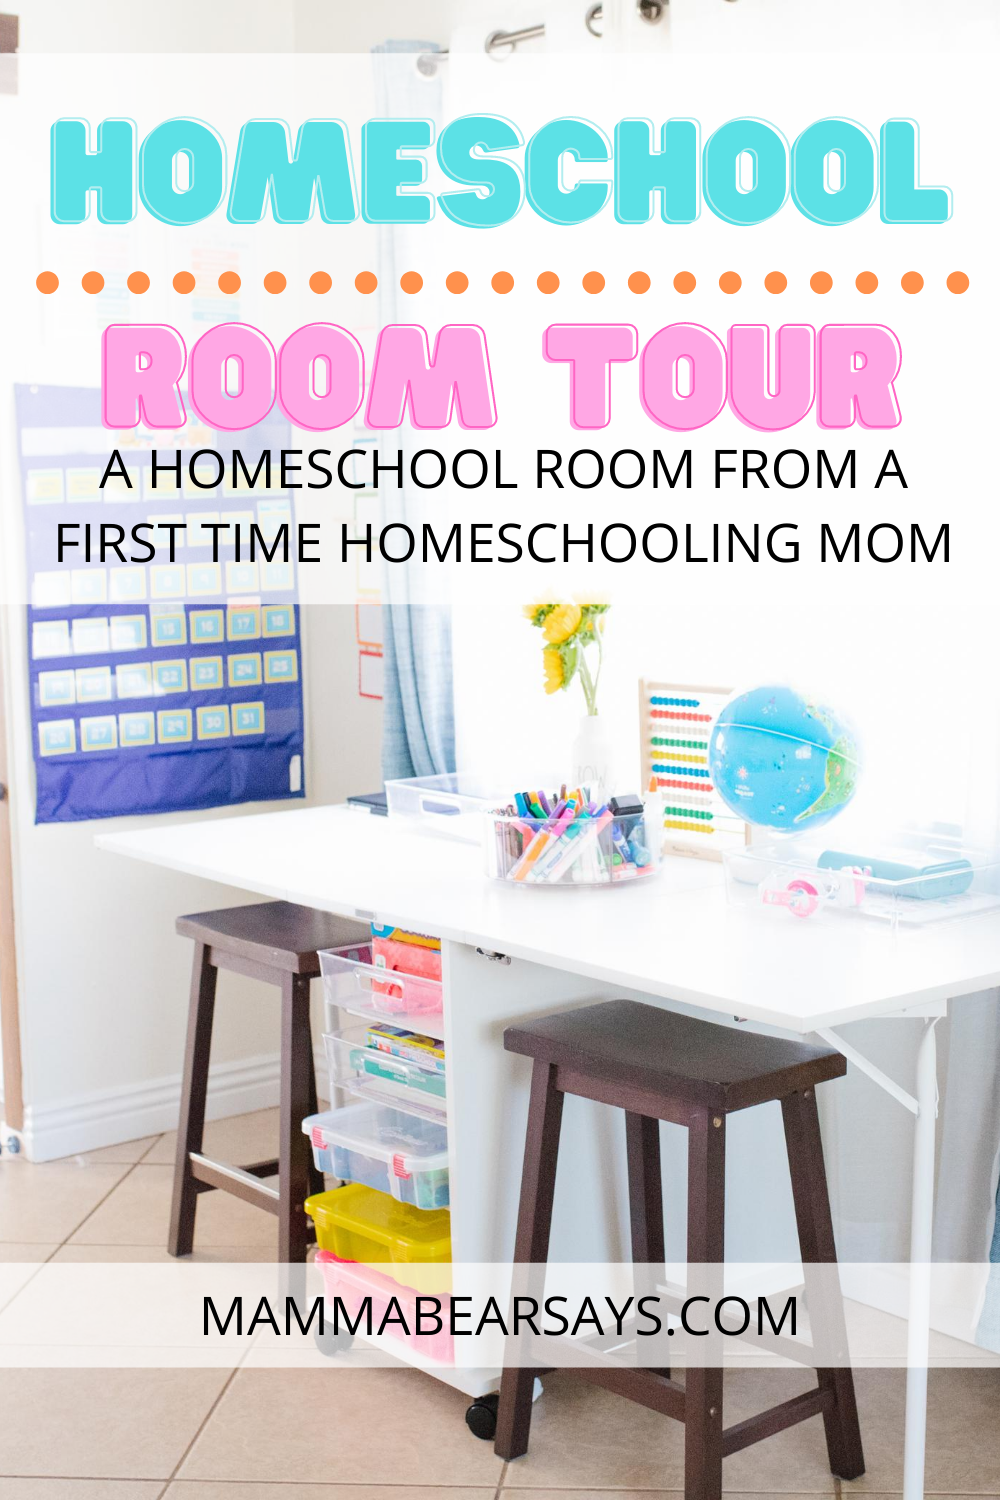 Homeschool room tour is ready! All the details to help you set up your own homeschooling area! Parents are getting ready to start their first year of homeschooling or distance learning. Check out our homeschool room design for this school year. #Homeschool #homeschooling #homeschoolroom #schoolroom #homeschoolroomtour #homeschoolroomideas #homeschoolideas #homedesign #homedecor